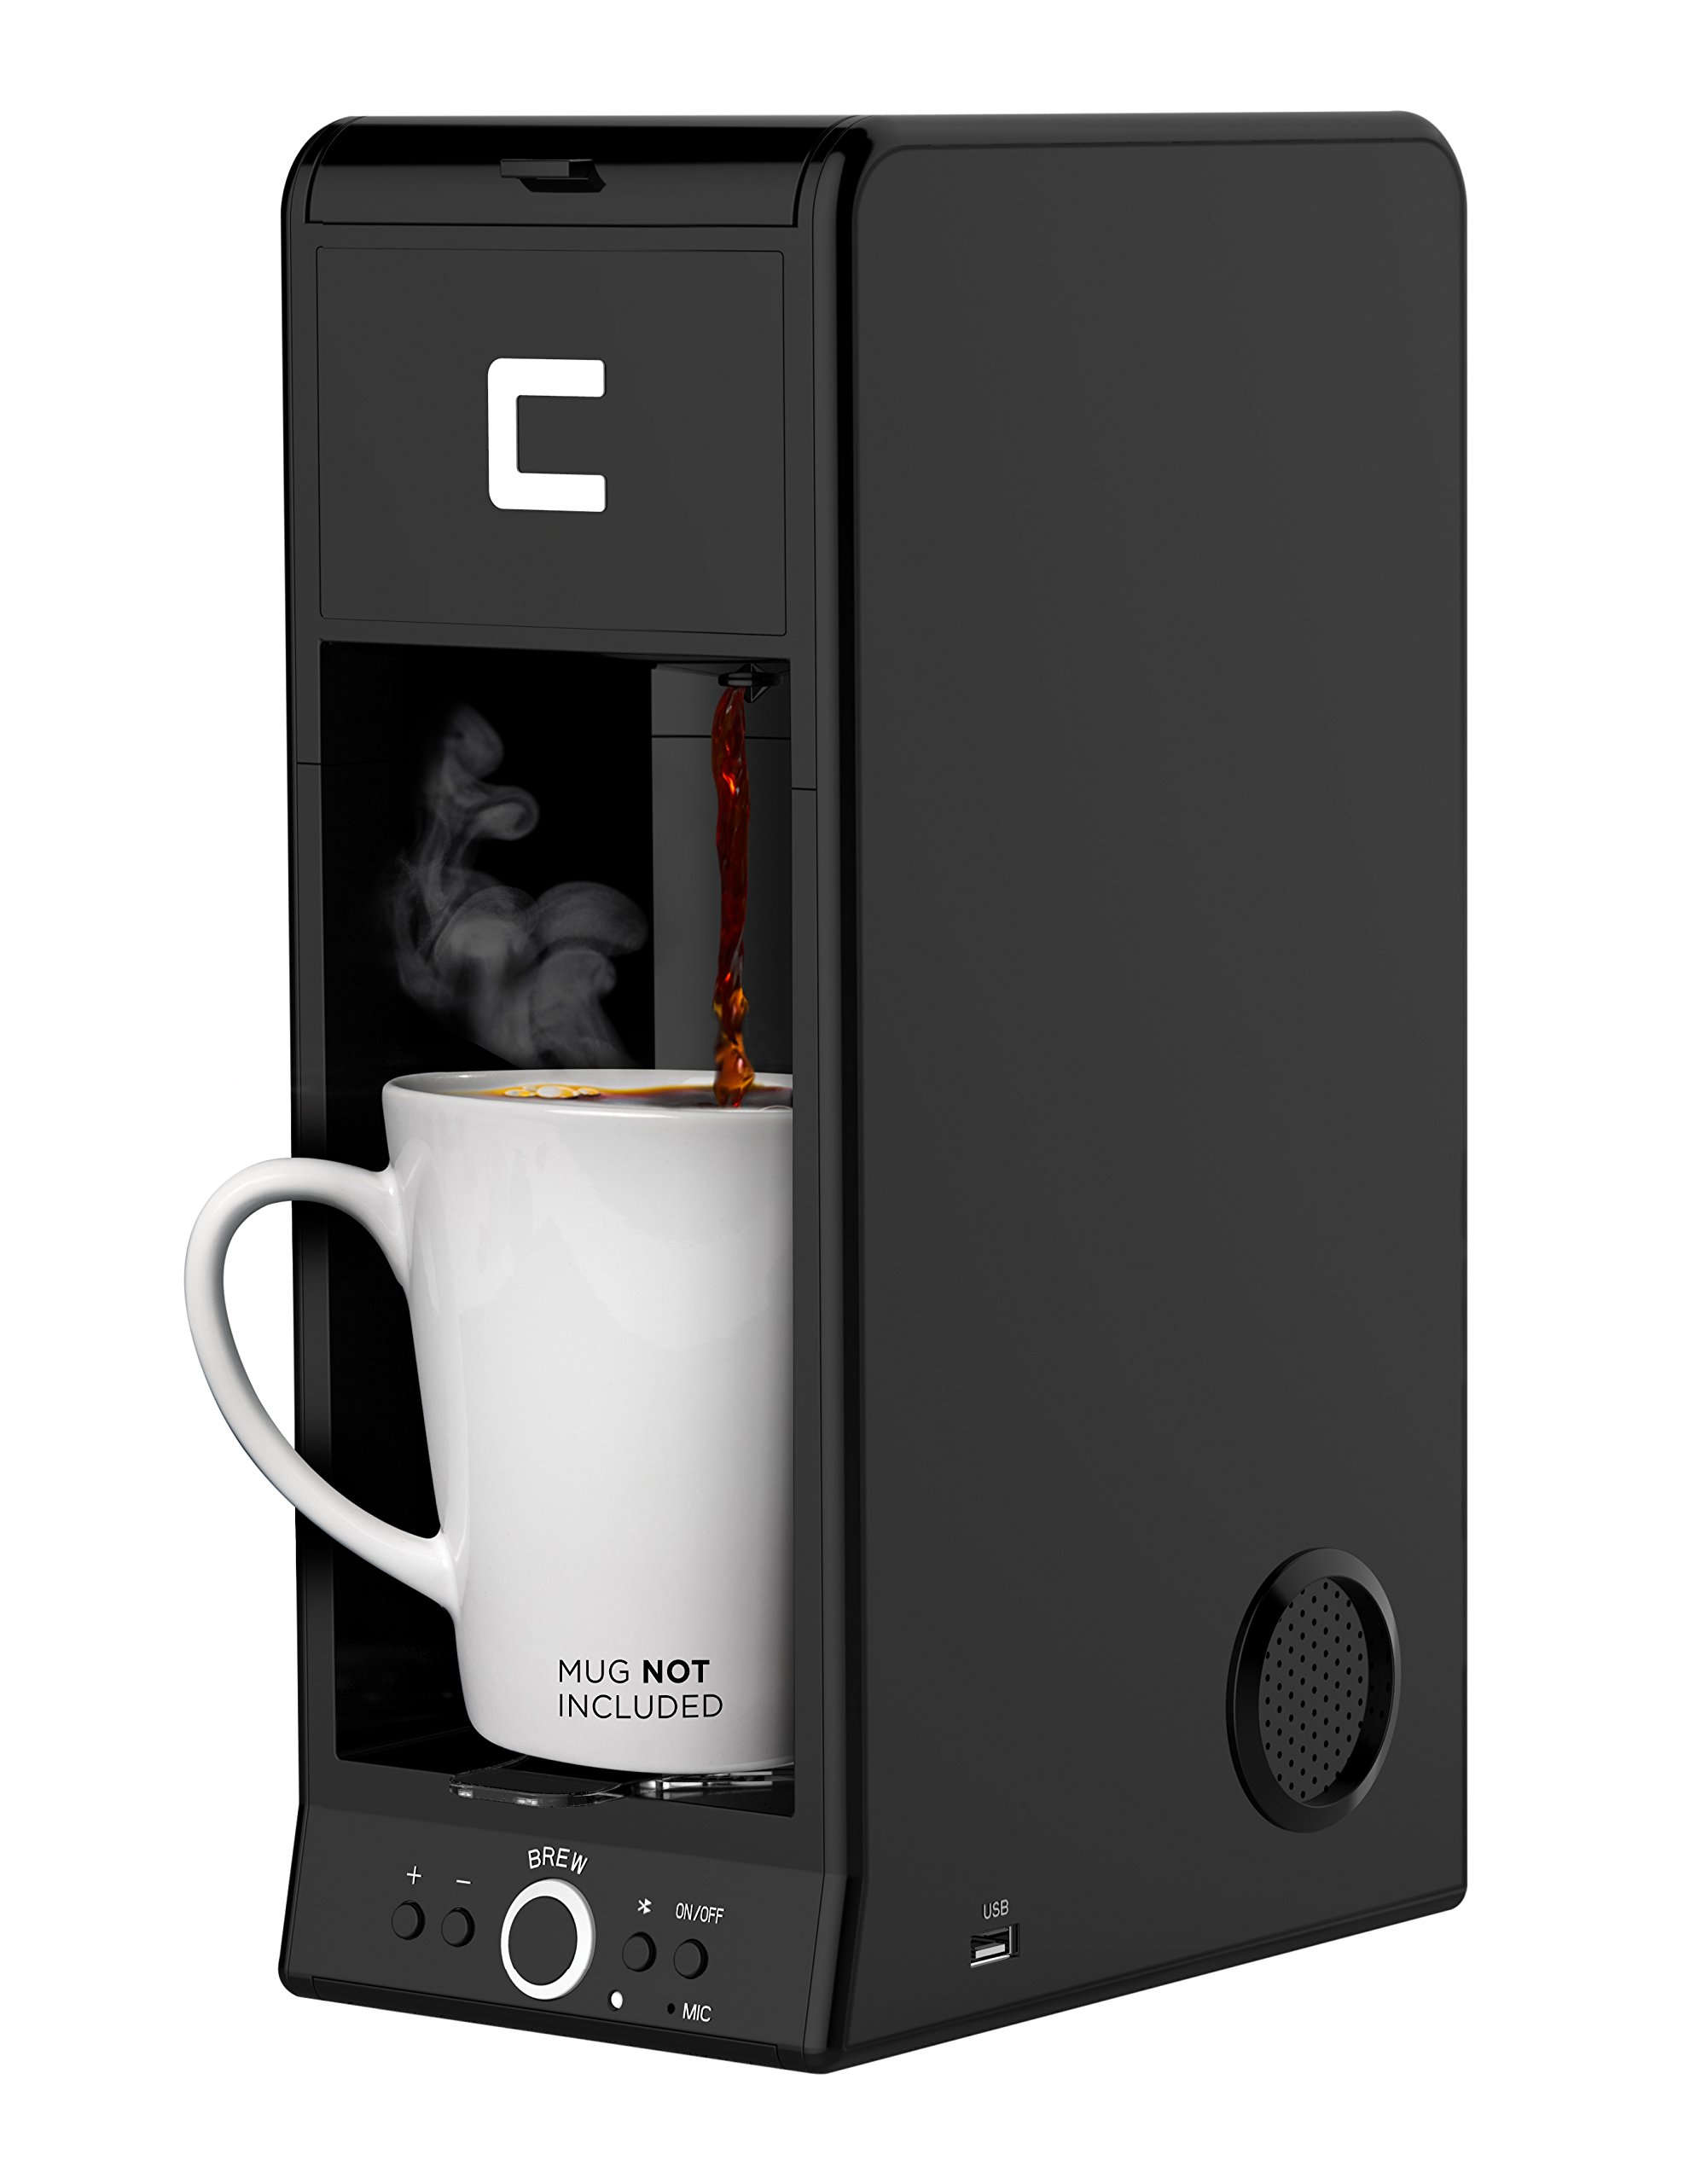 Chefman Coffee Maker K-Cup BUZZ Brewer with Bluetooth Enabled Speaker System and FILTER INCLUDED For Use With Coffee Grounds - Small Footprint Single Serve - RJ14-BUZZ by Chefman